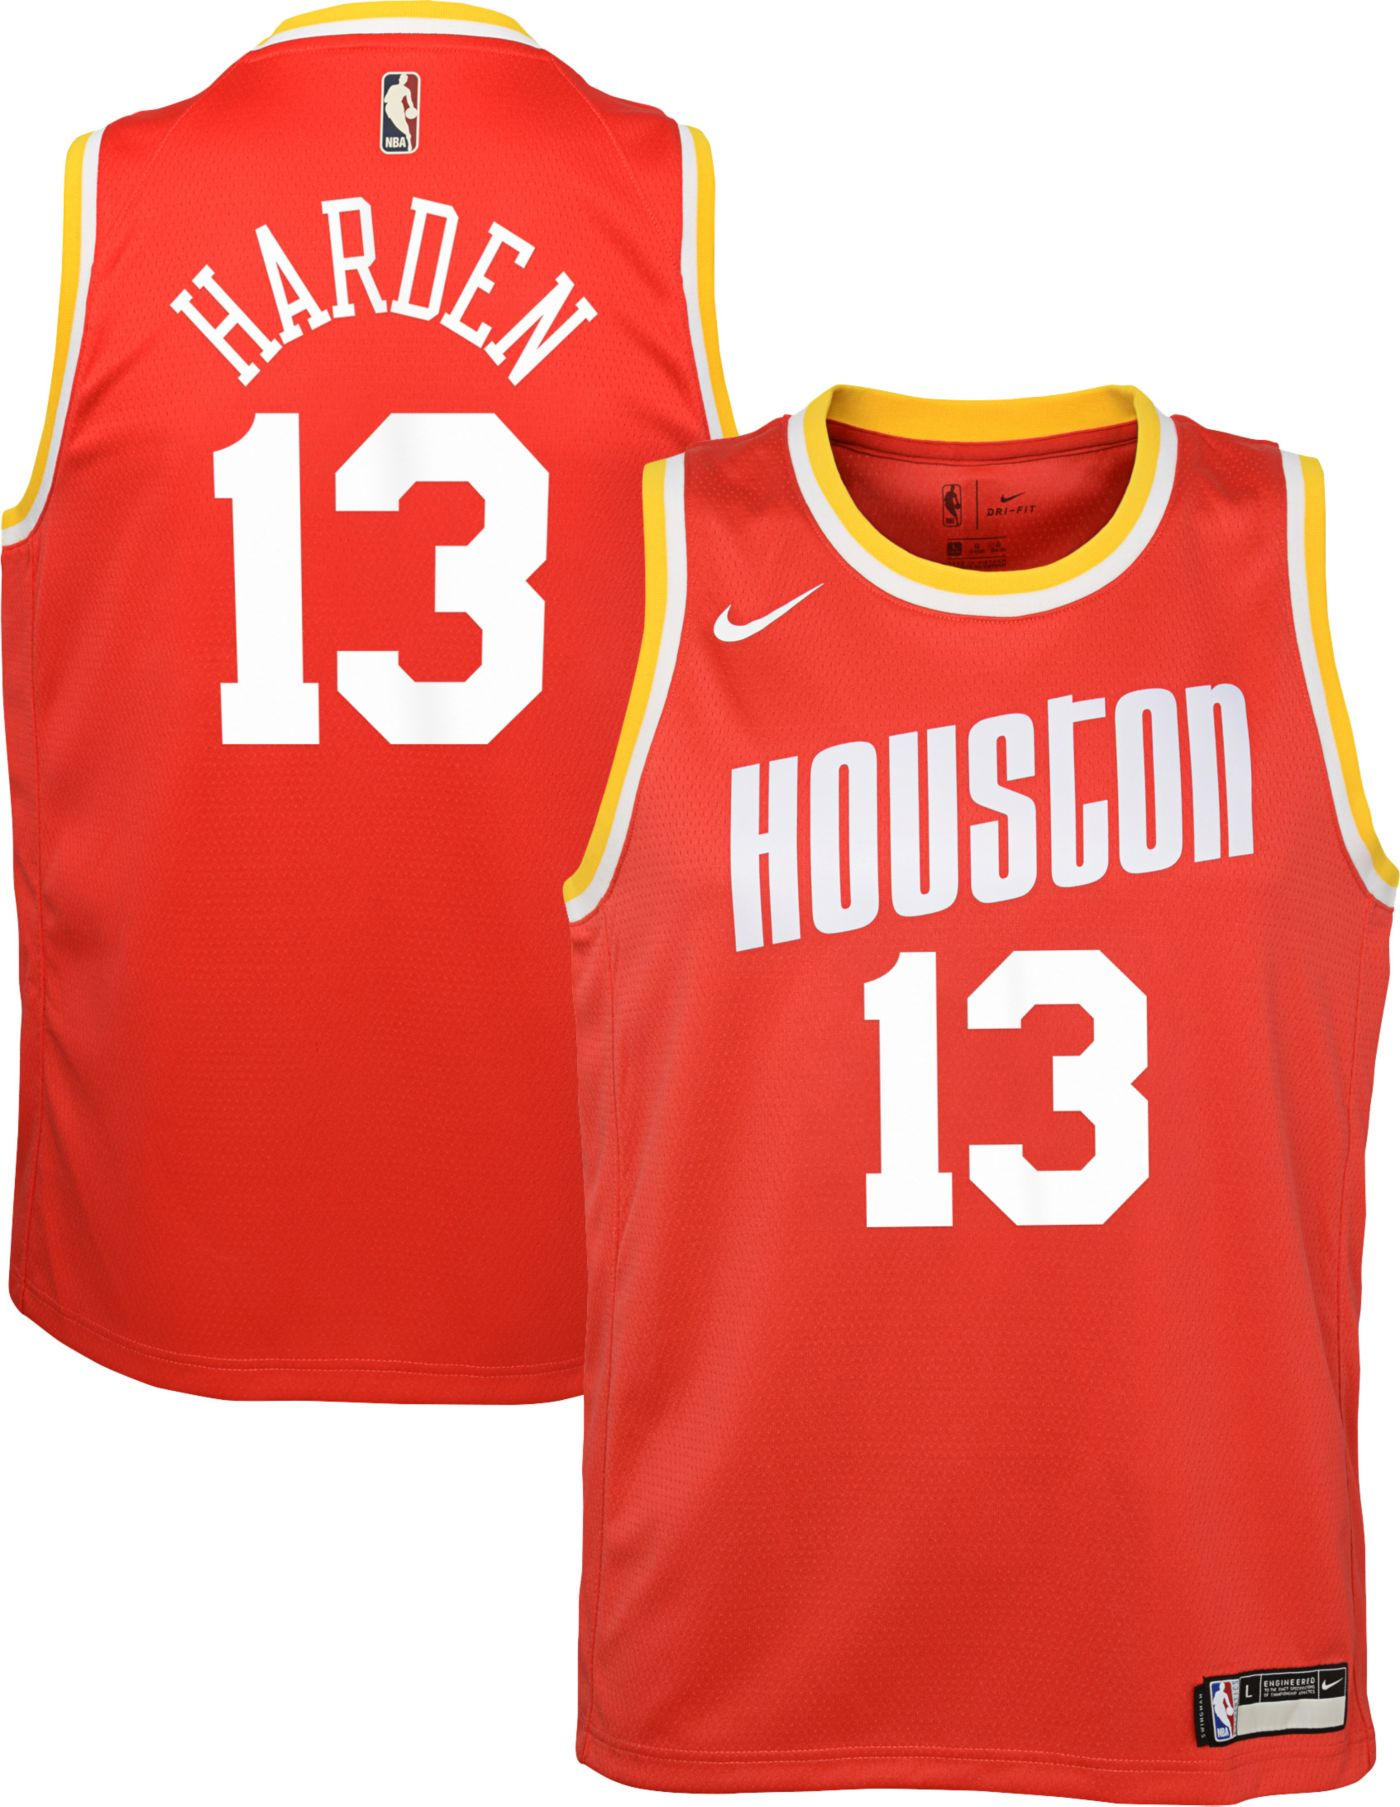 Nike Youth Houston Rockets James Harden #13 Hardwood Classic Dri-FIT Swingman Jersey